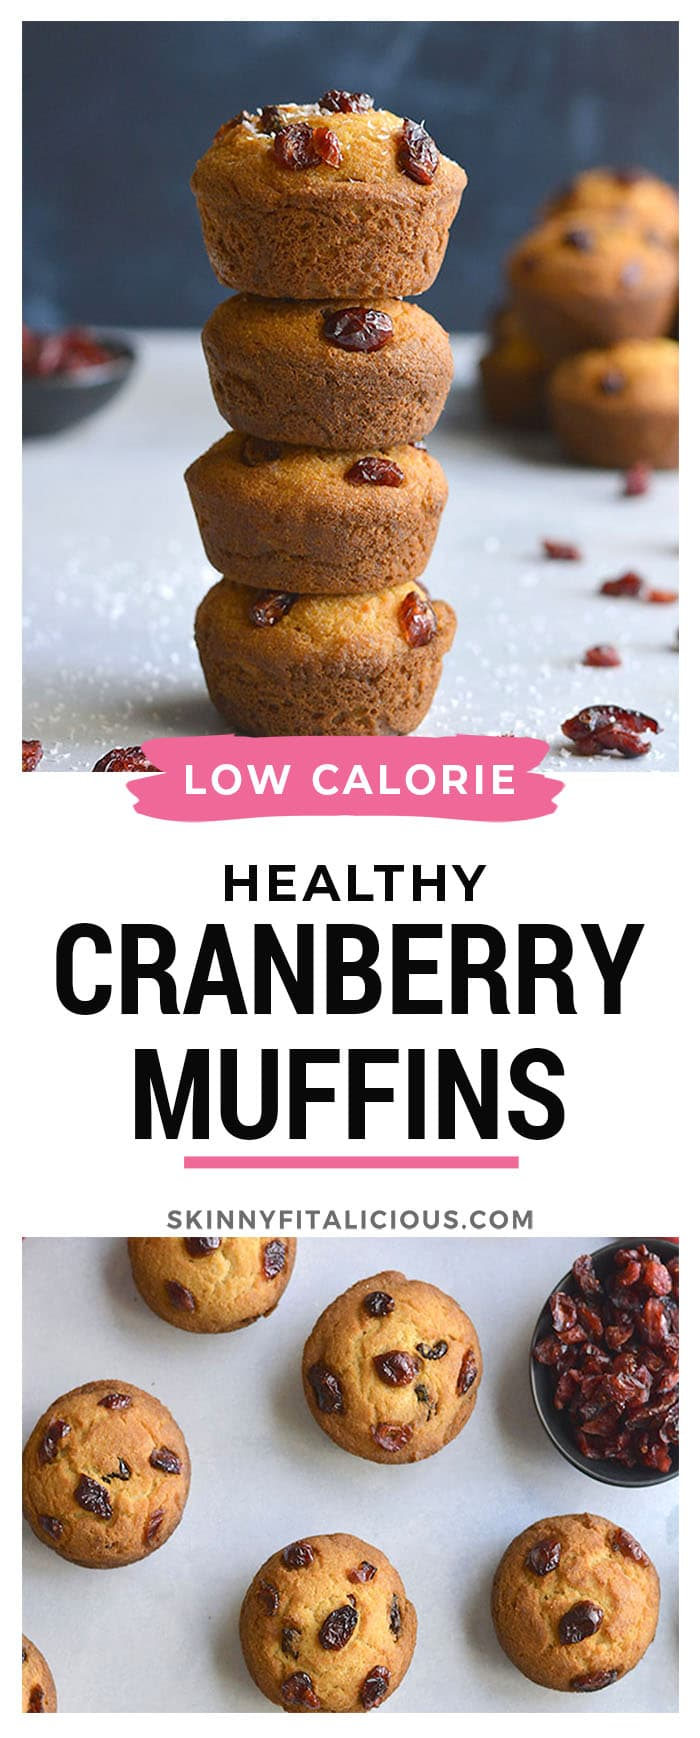 Delicious Coconut Cranberry Muffins made with Greek yogurt, coconut and oat flour are lightly sweetened. A healthier gluten free breakfast or snack on the go.